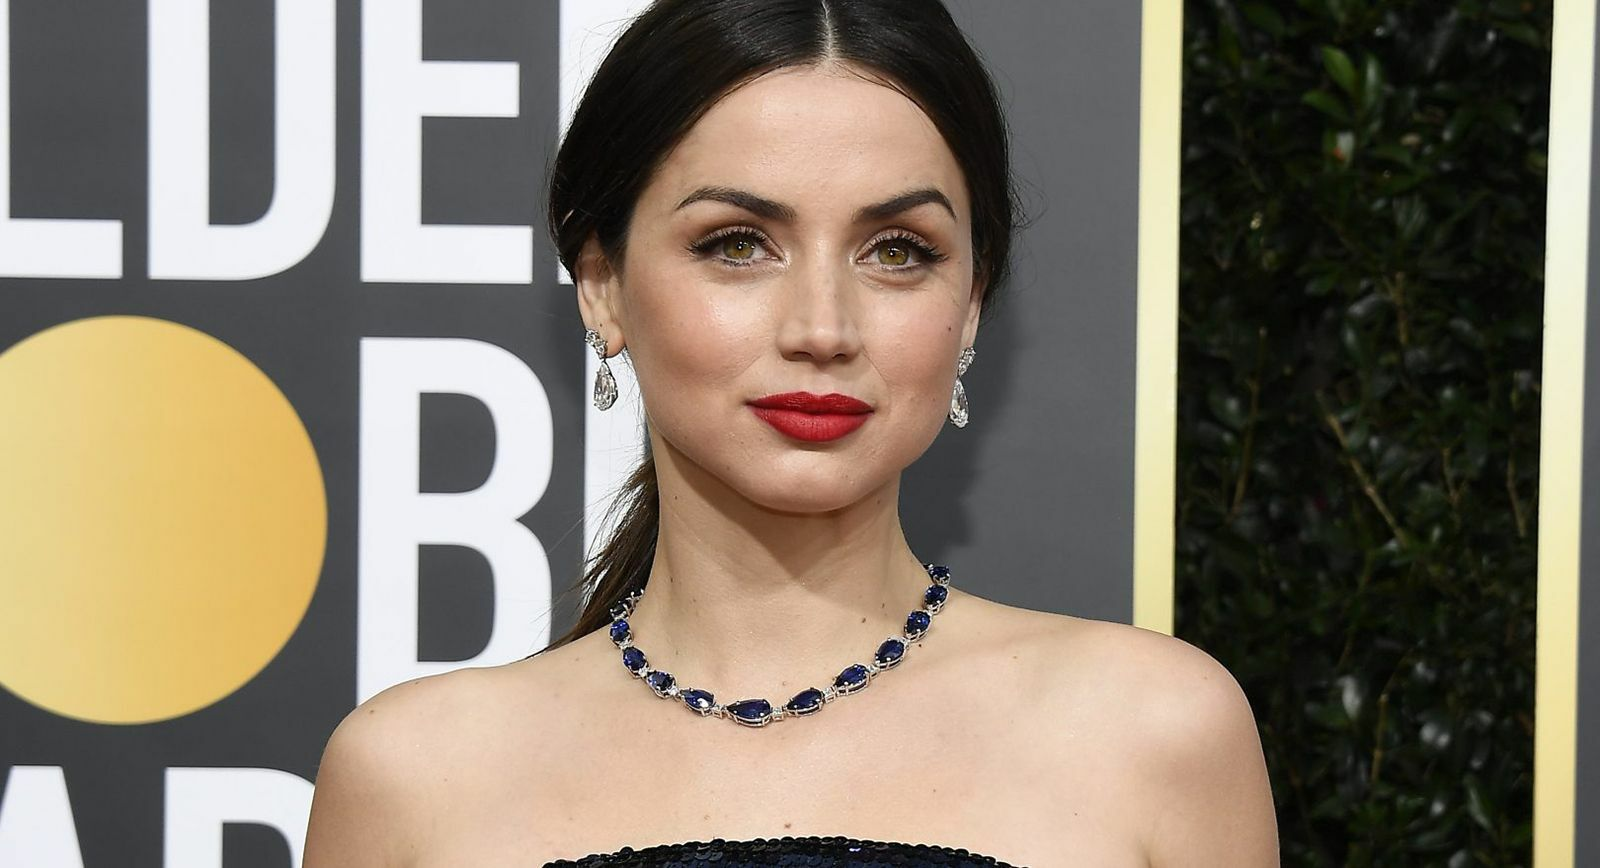 Ana de Armas in Tiffany and Co. 'Blue Book 2019' collection sapphire and diamond necklace and earrings